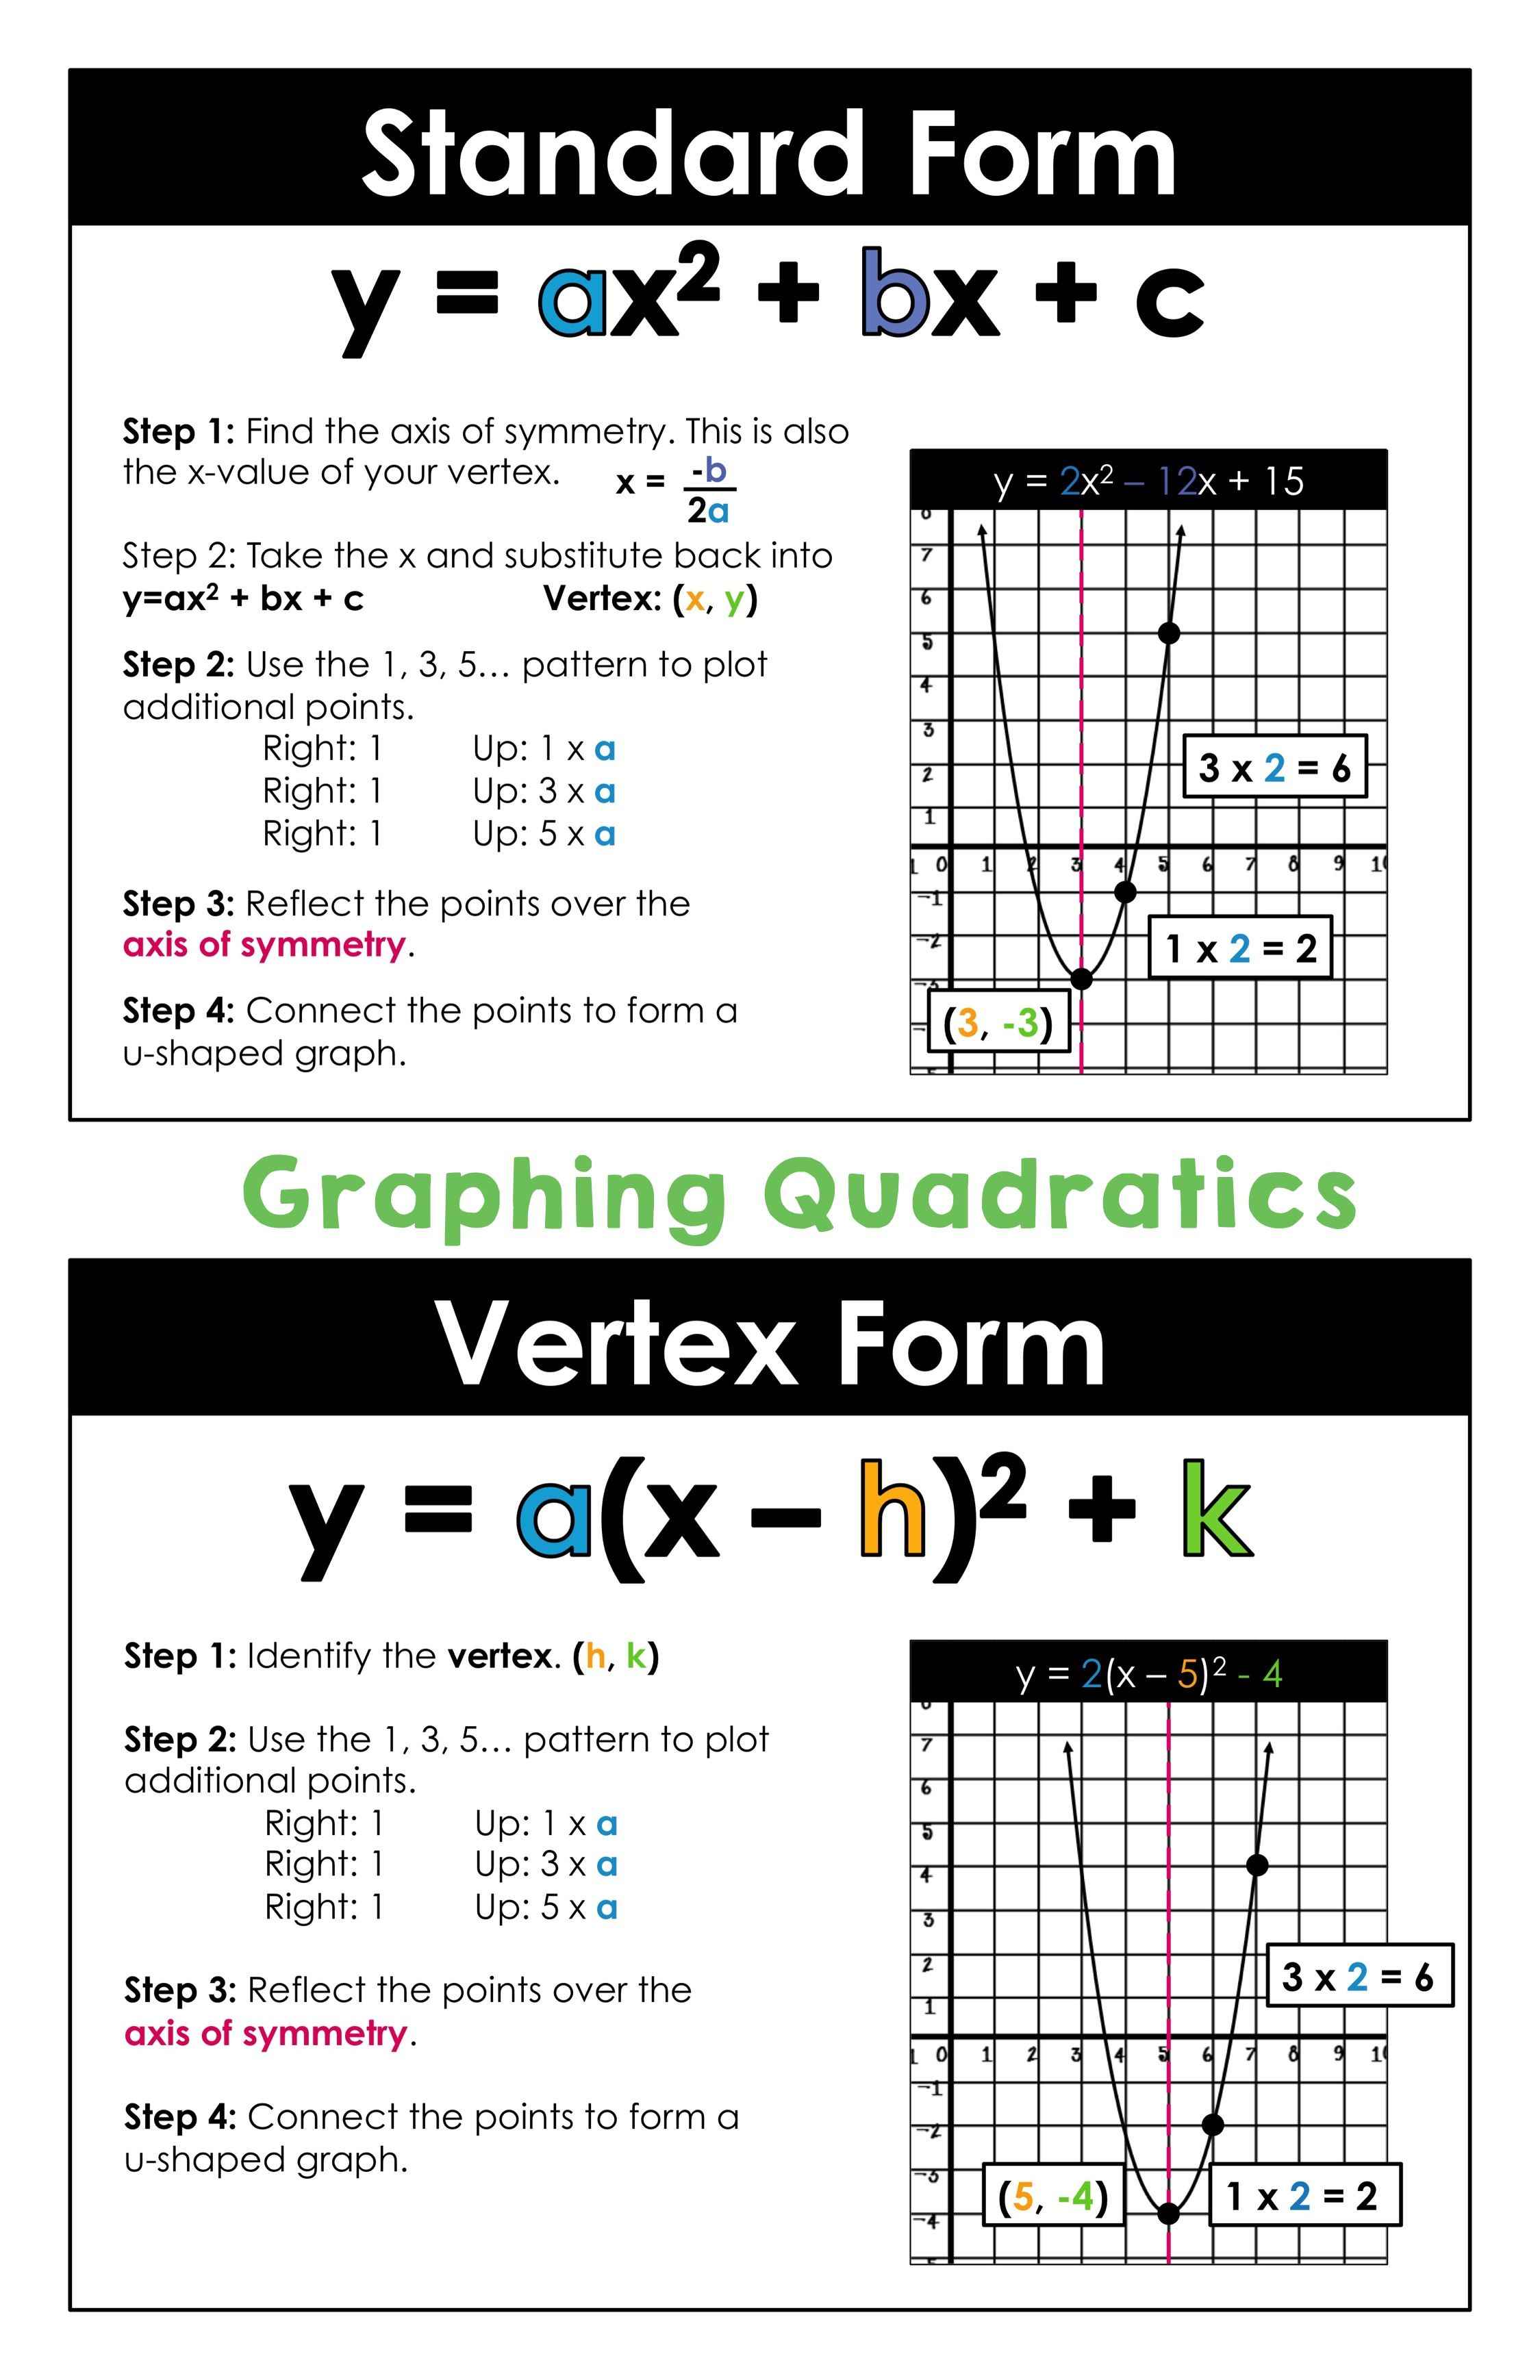 Graphing Quadratic Functions Posters Standard Form And Vertex Form